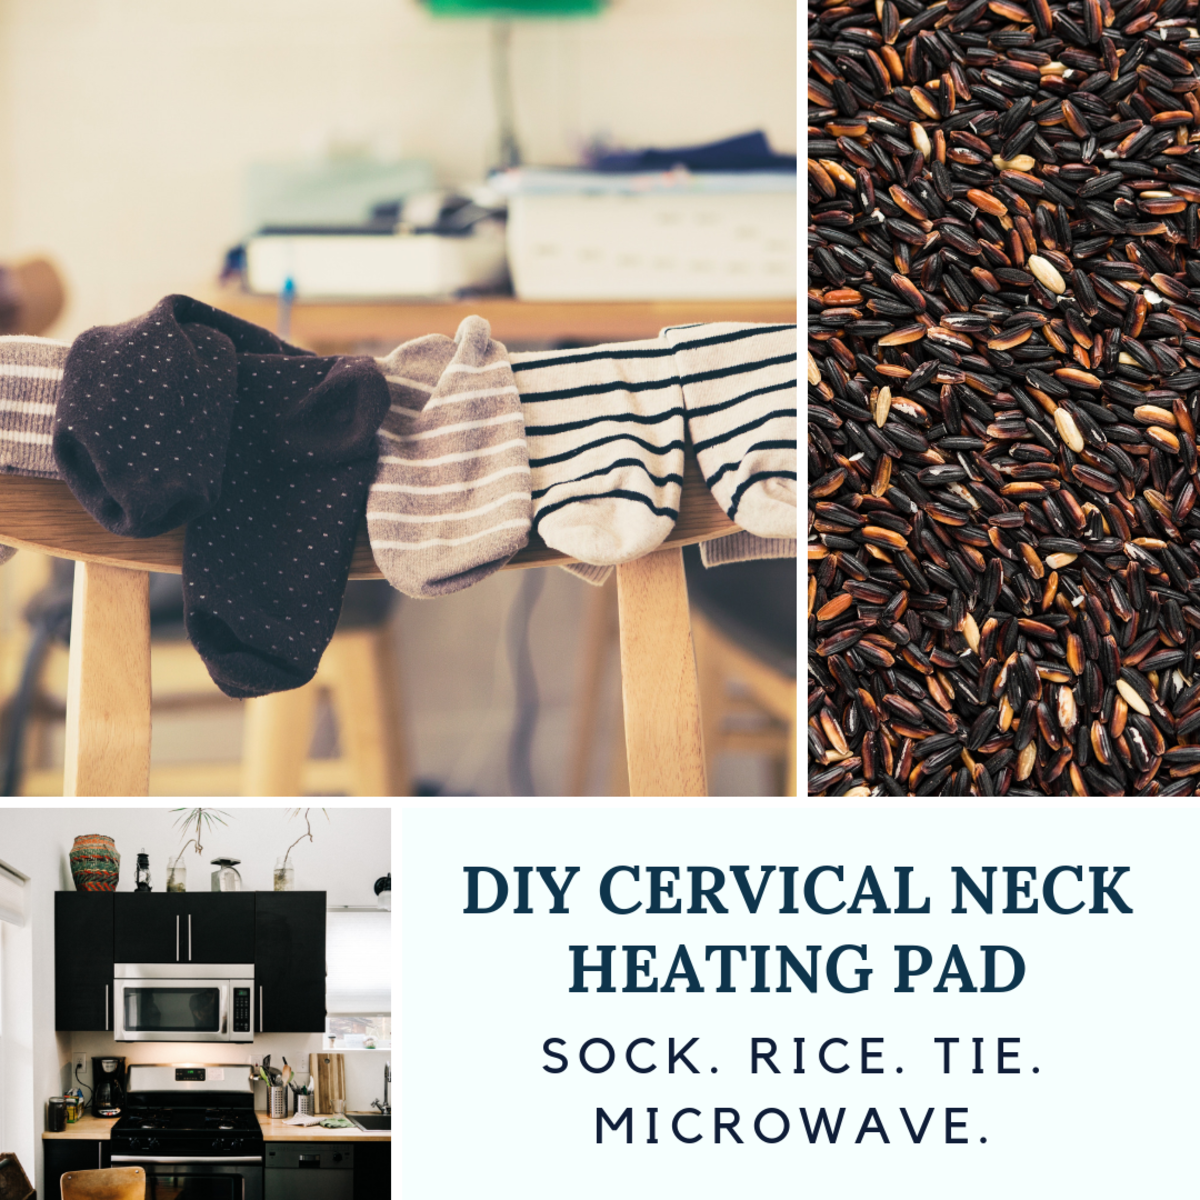 Make your own cervical neck heating pad from simple supplies at home.